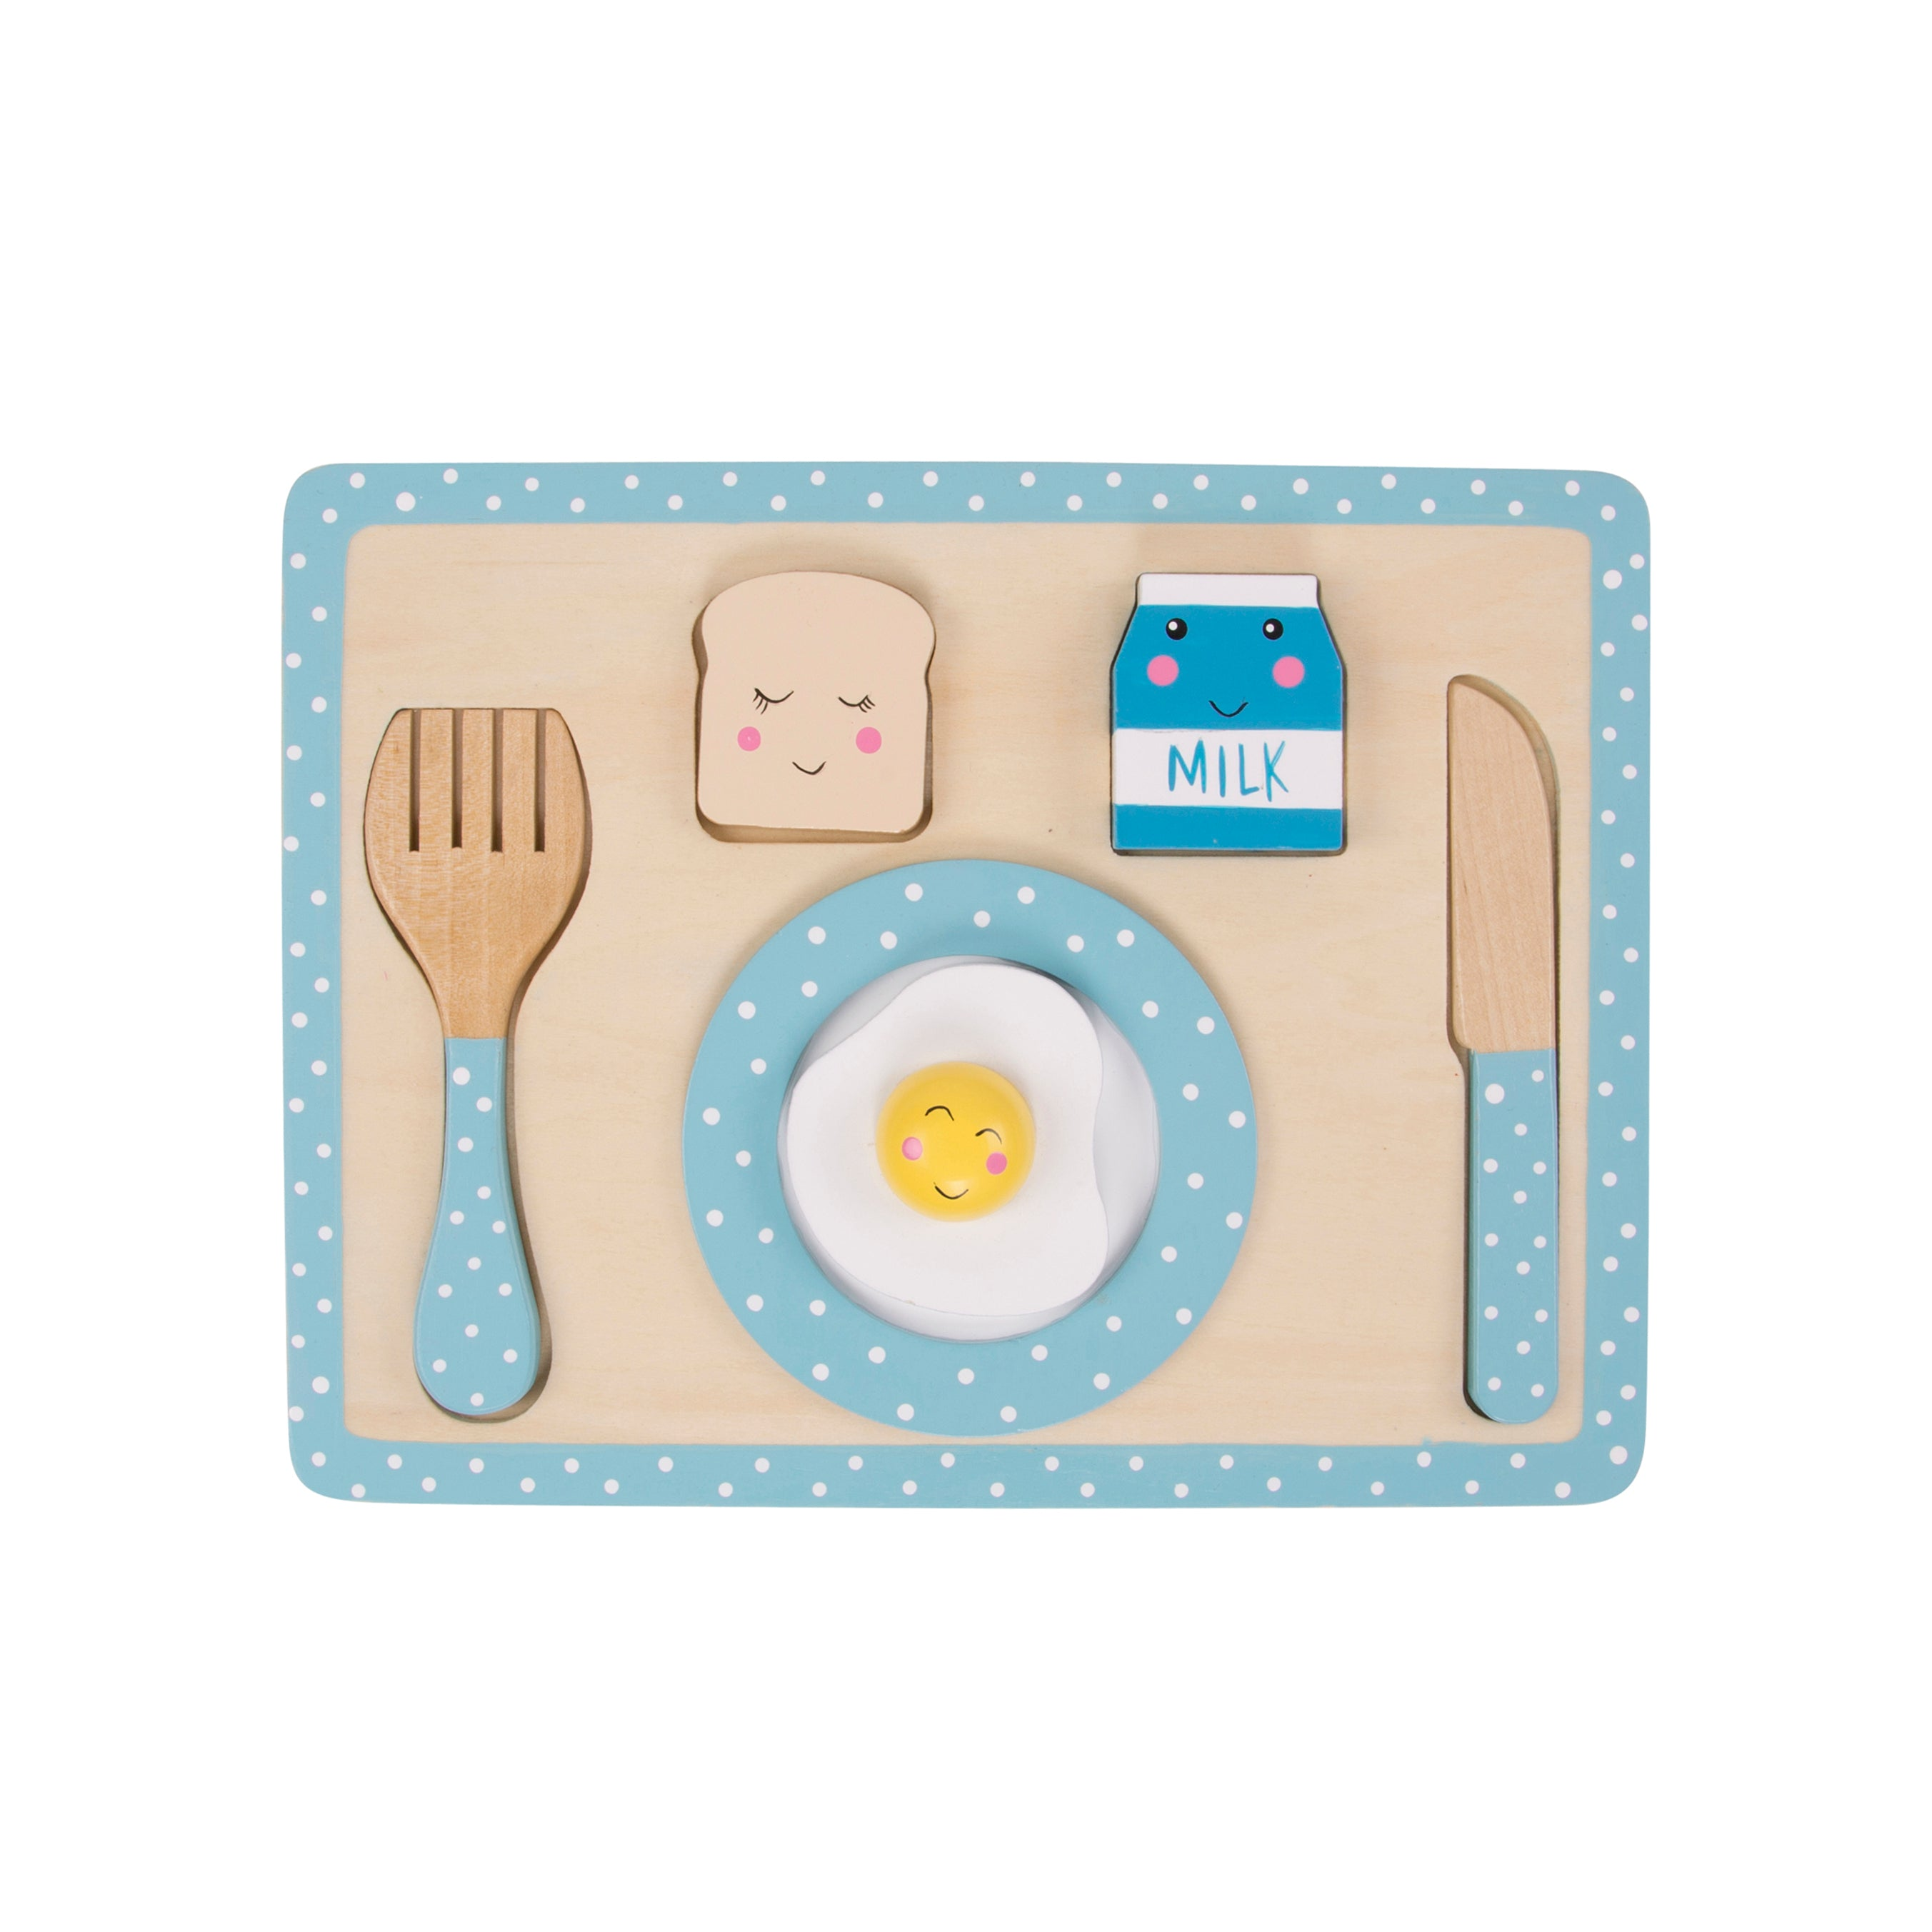 Breakfast Kitchen Play Set - jacksplot